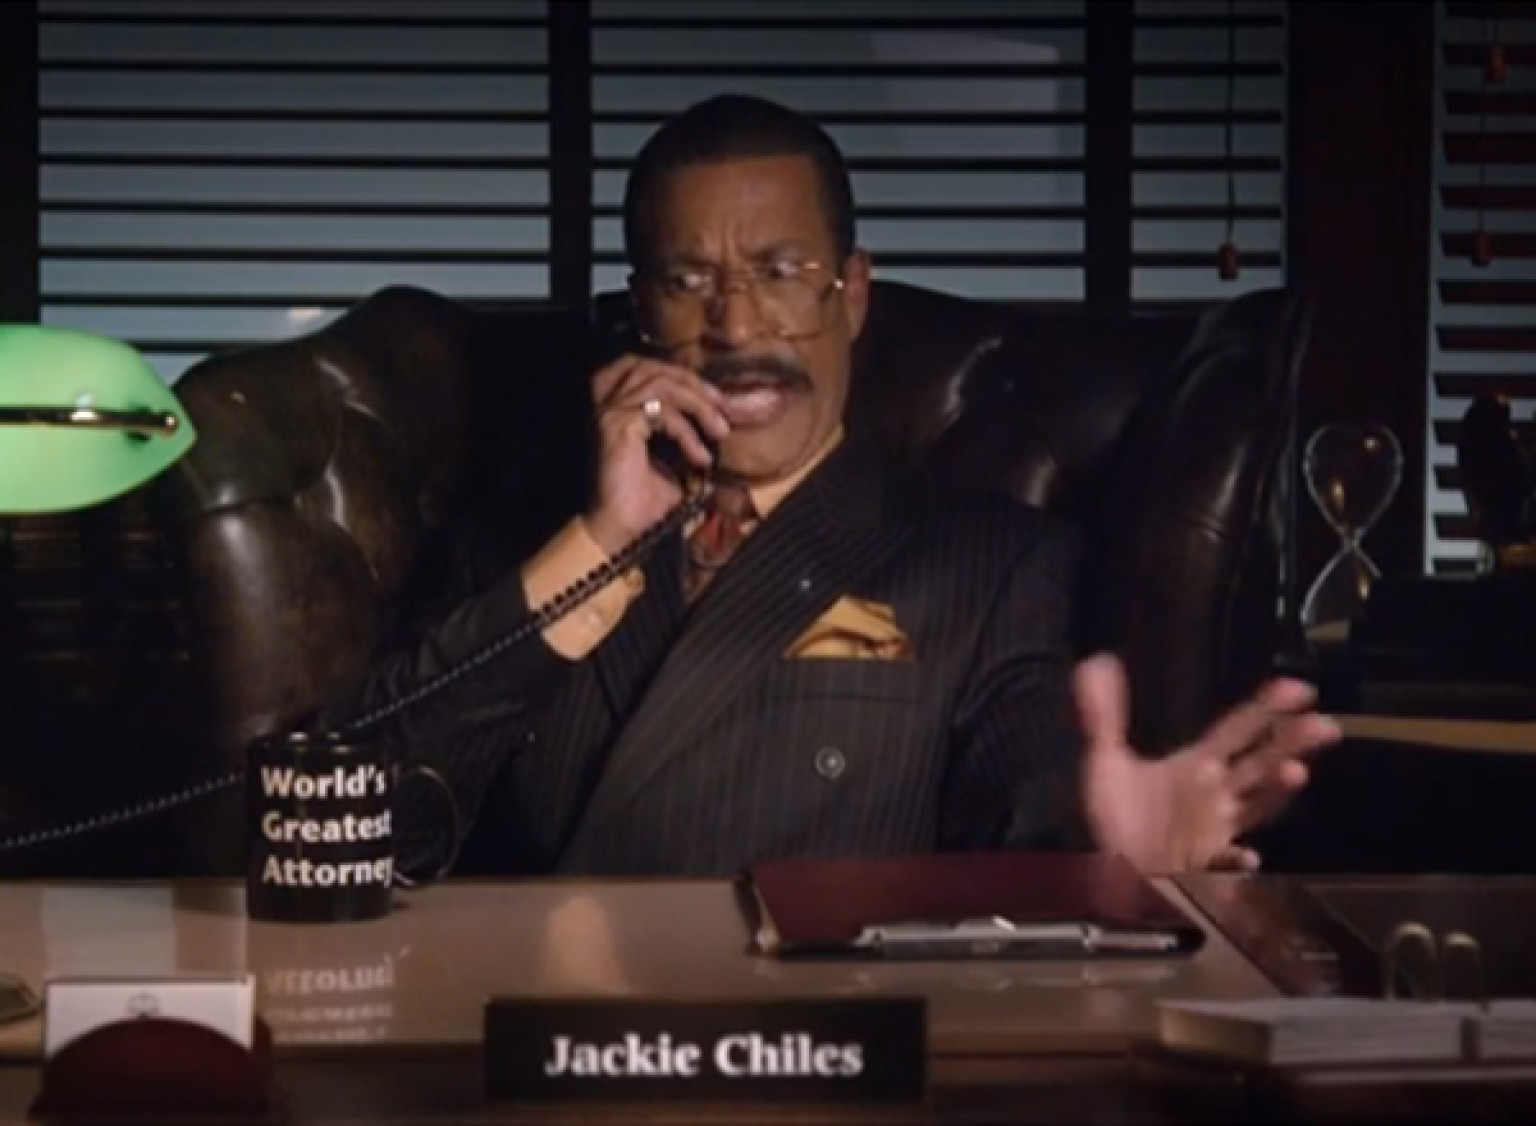 Seinfeld Quotes Seinfeld' Character Jackie Chiles Returns In Jim Beam Commercial